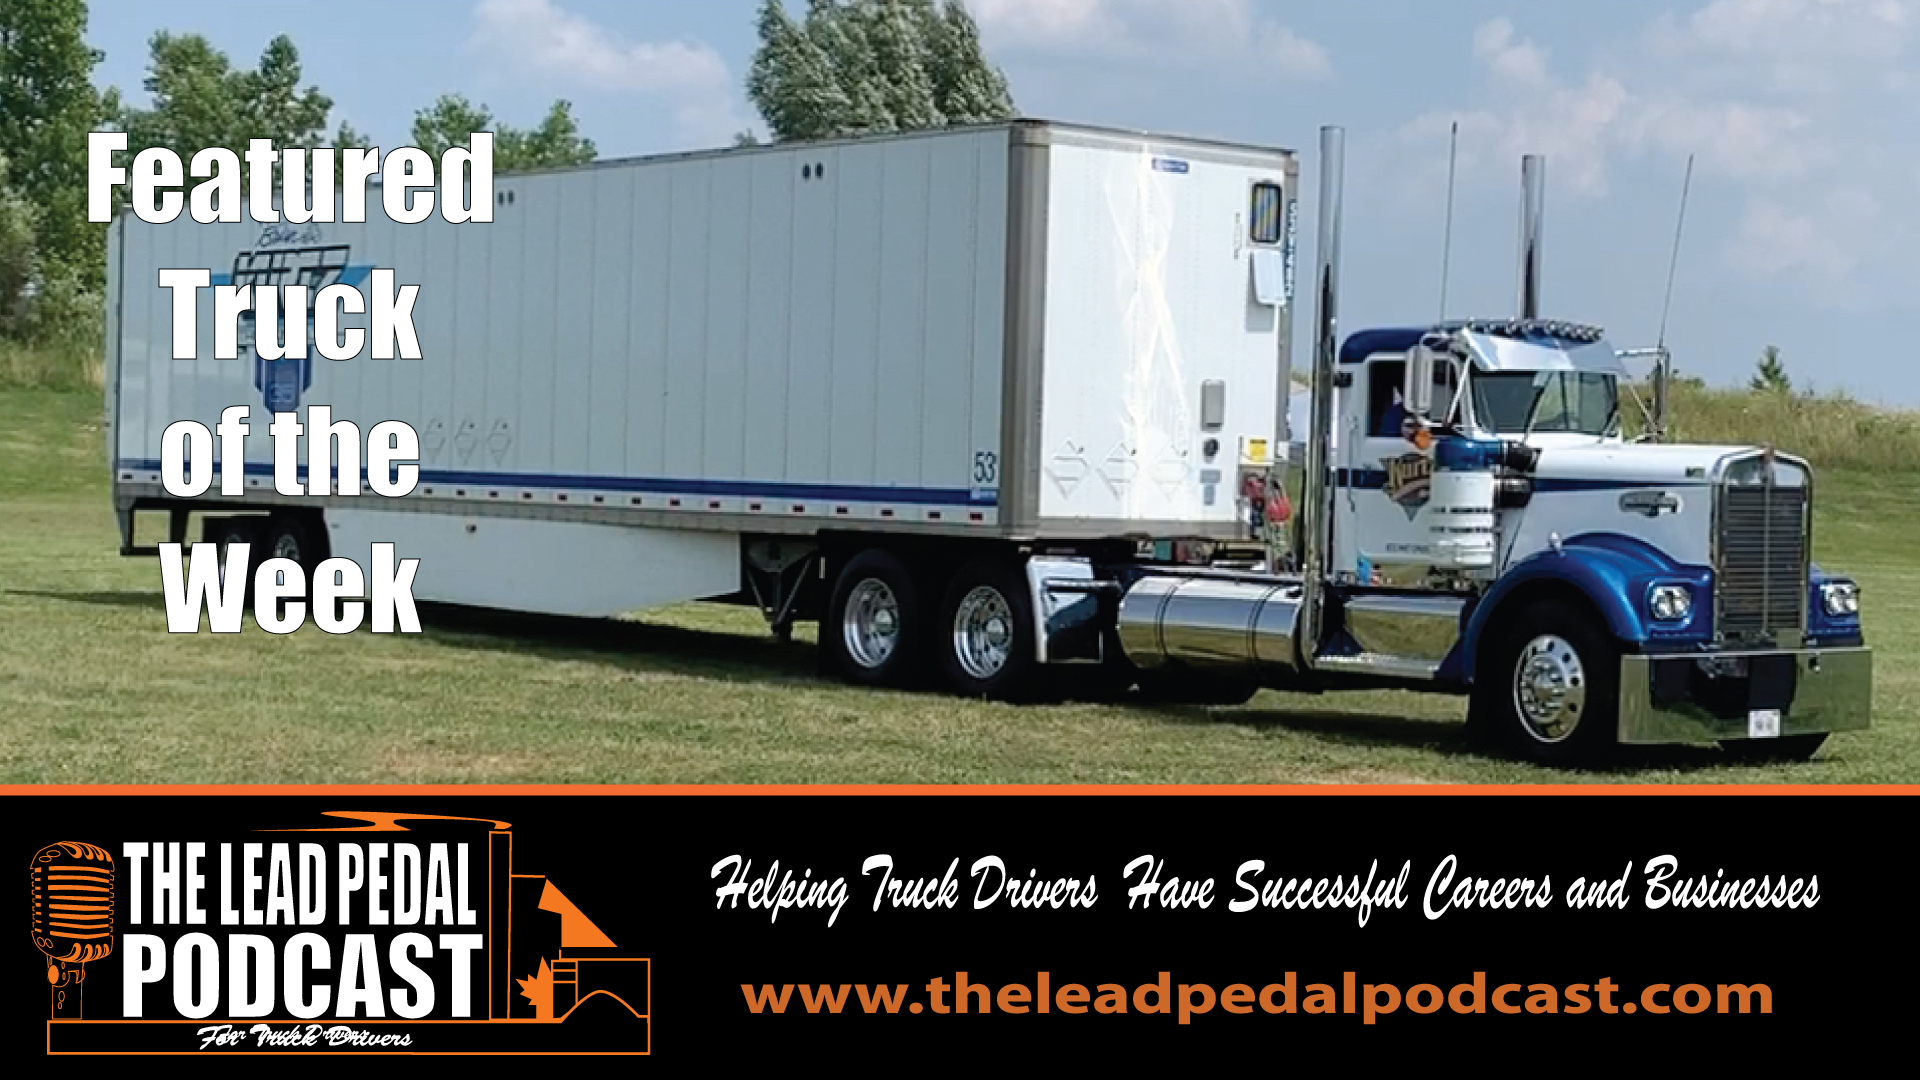 Featured Truck